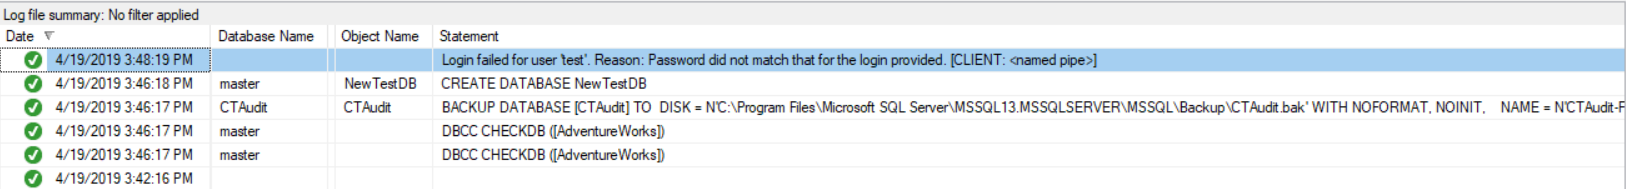 SQL Server Audit Log File Viewer 2